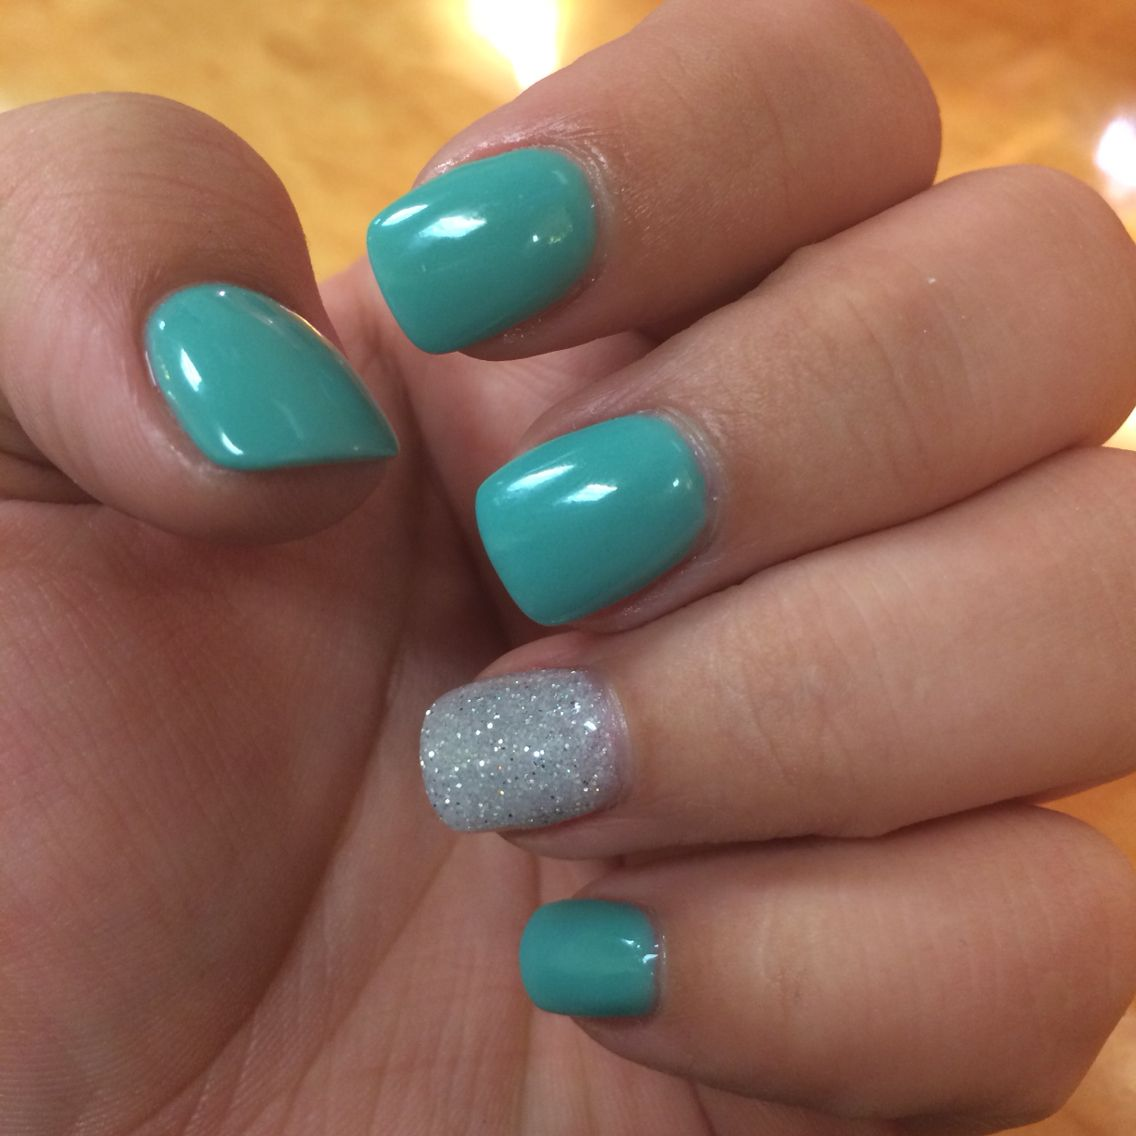 Got my nails done today! Nexgen is the best! | Nails | Pinterest ...